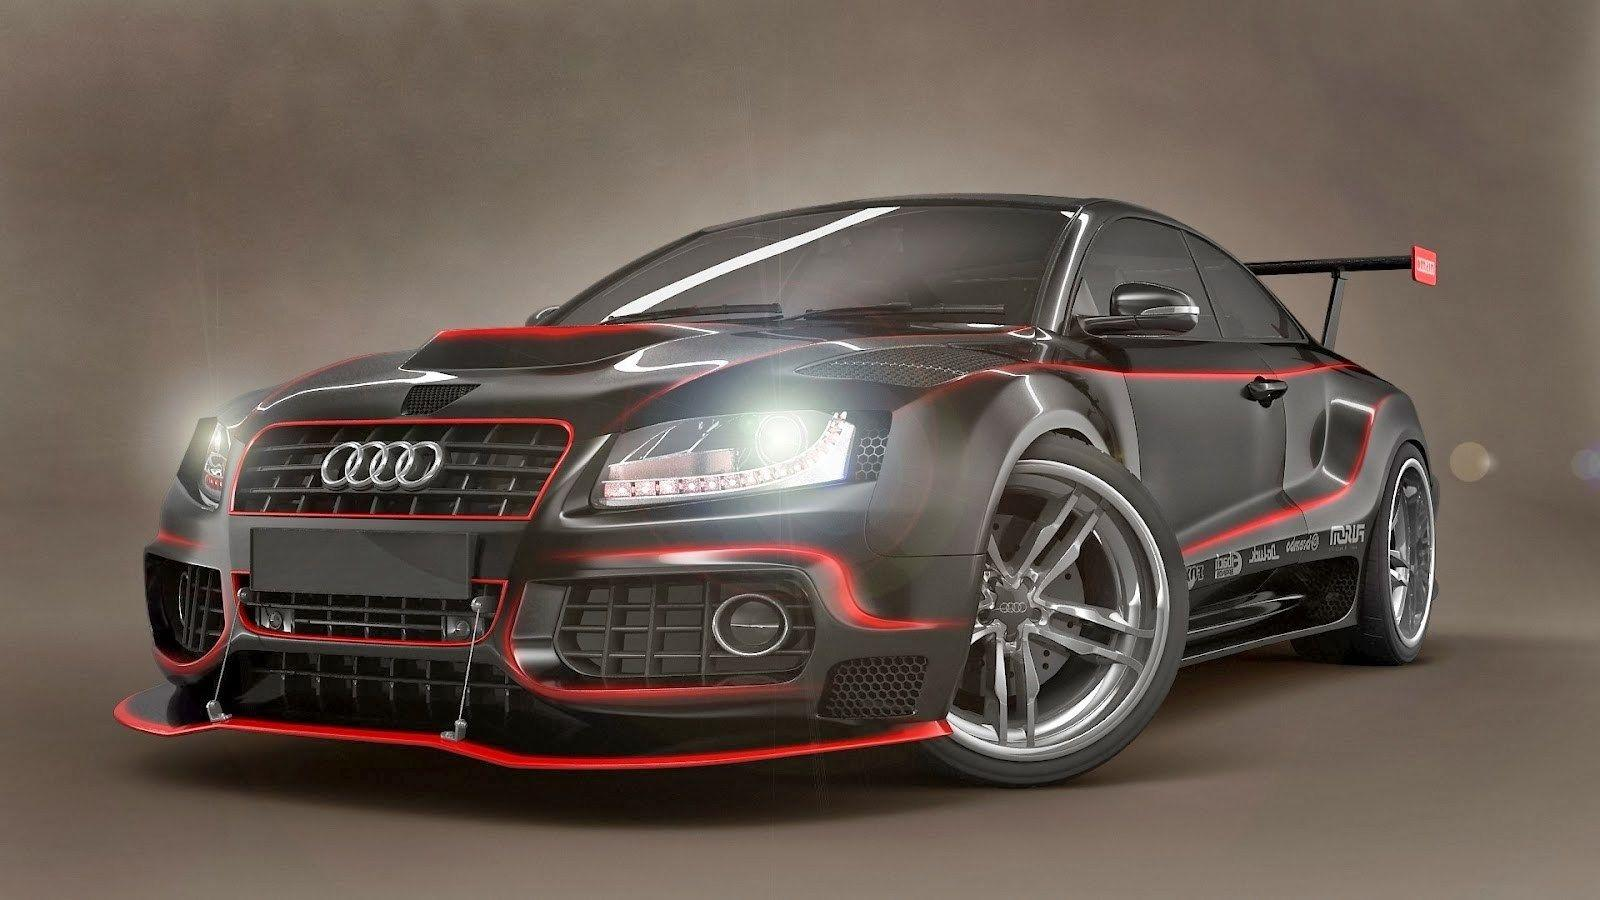 Audi Rs7 0-60 >> Modified Car Wallpapers - Wallpaper Cave